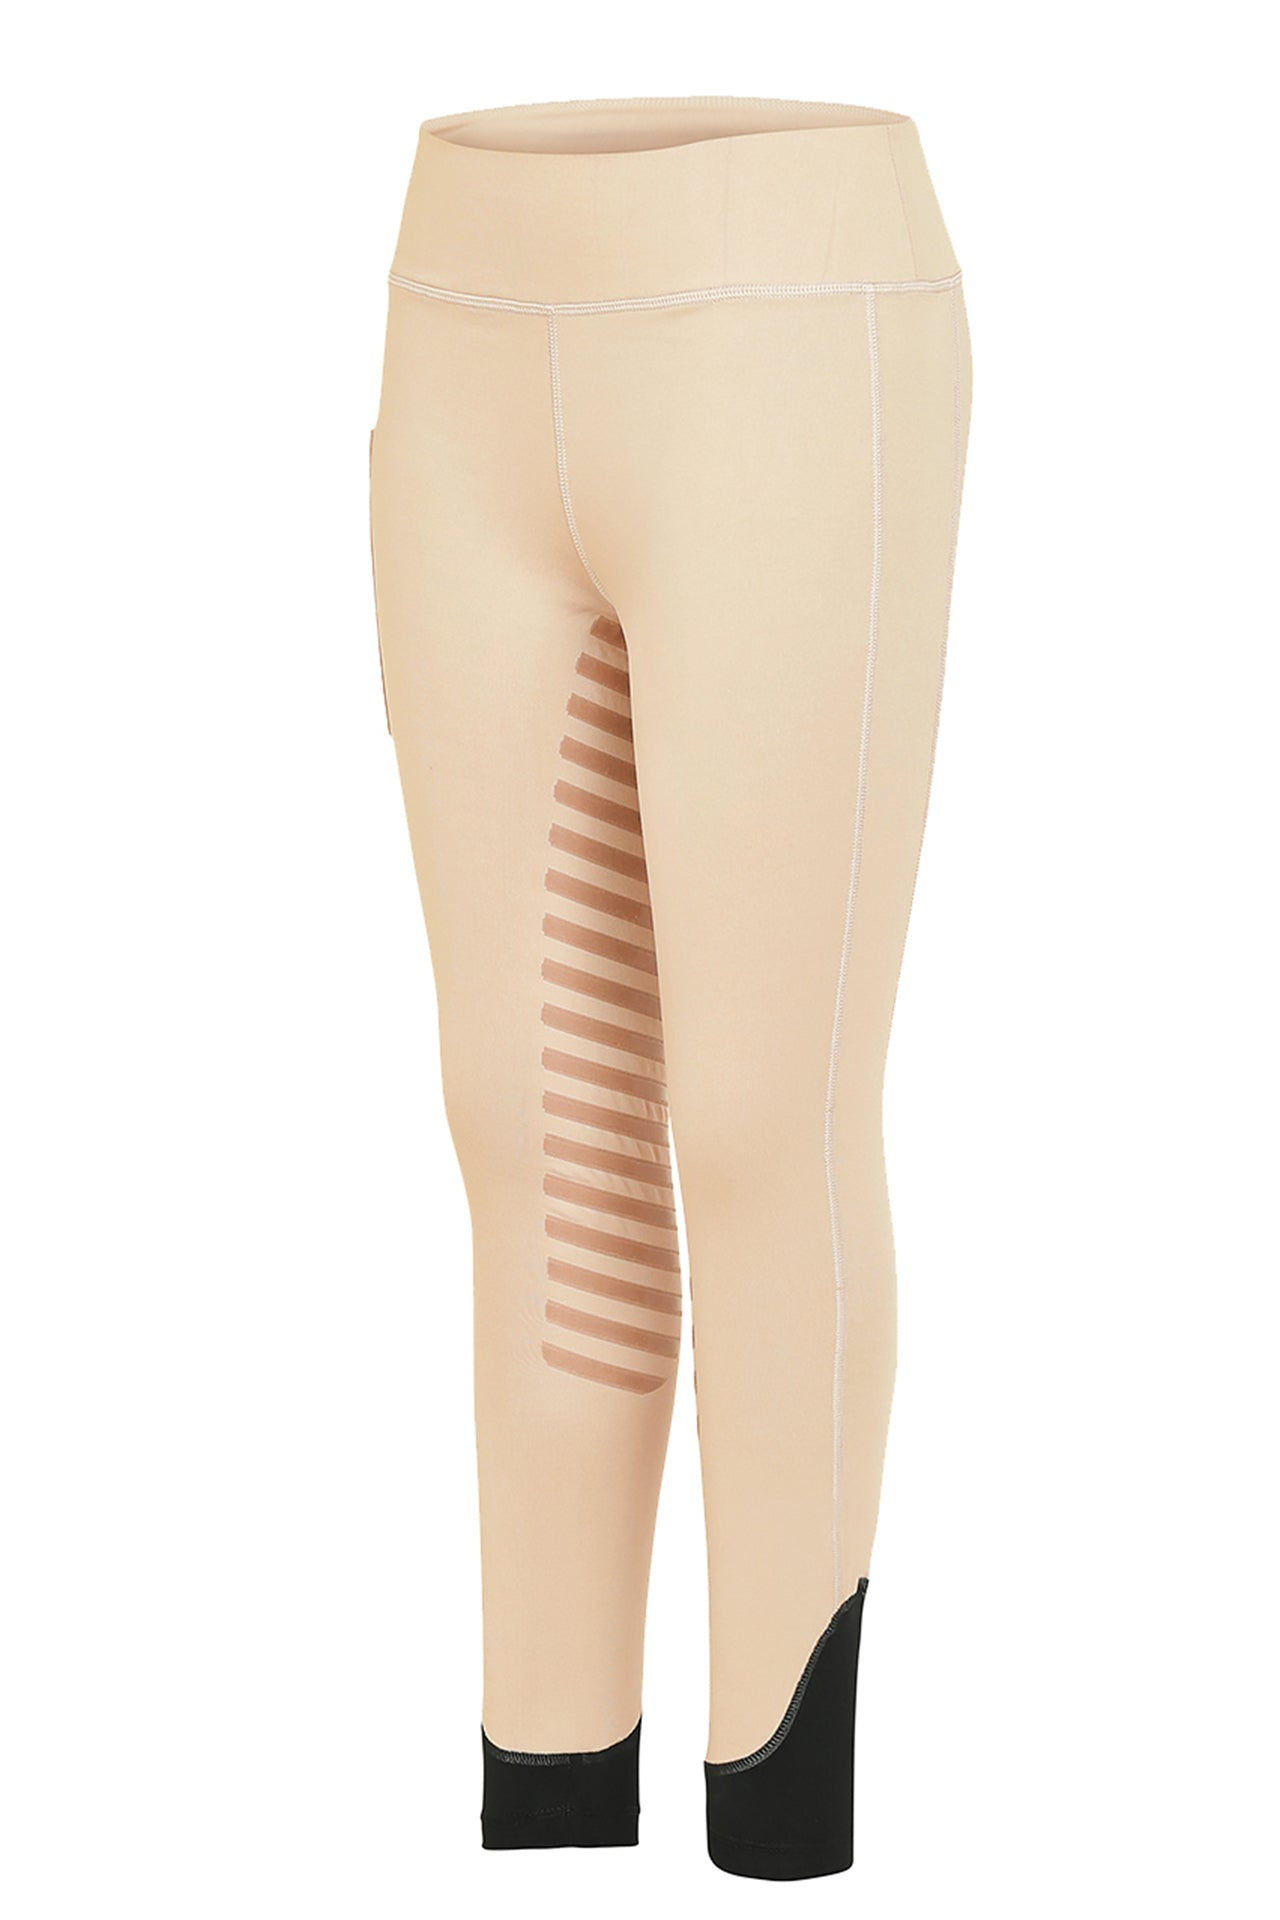 Ecorider By TuffRider Ladies Zion Tights_5670